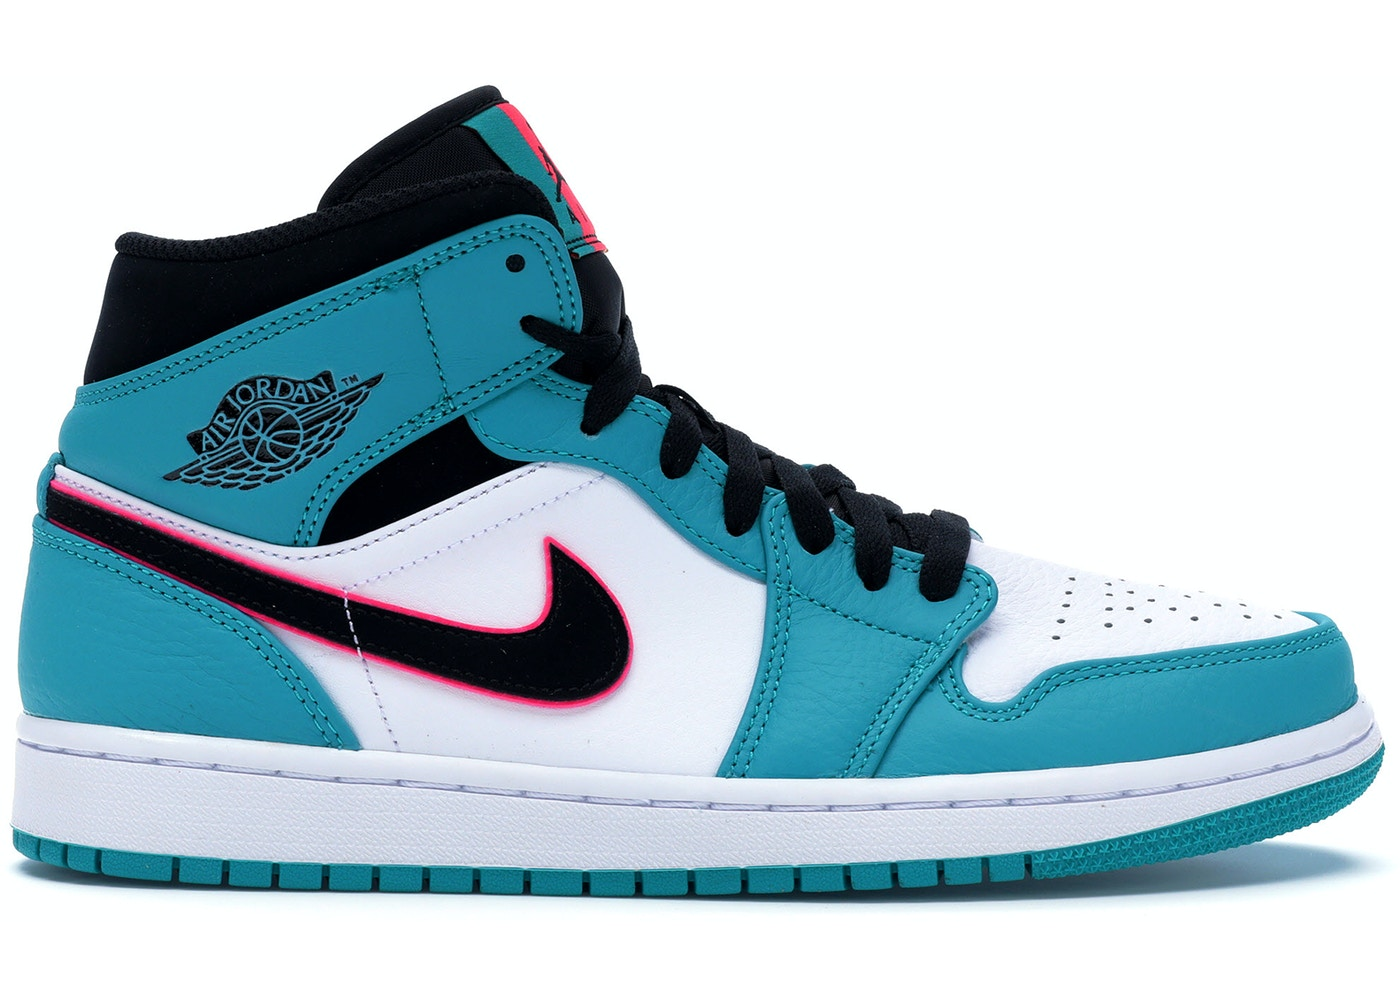 783017ecf9df91 Jordan 1 Mid South Beach - 852542-306